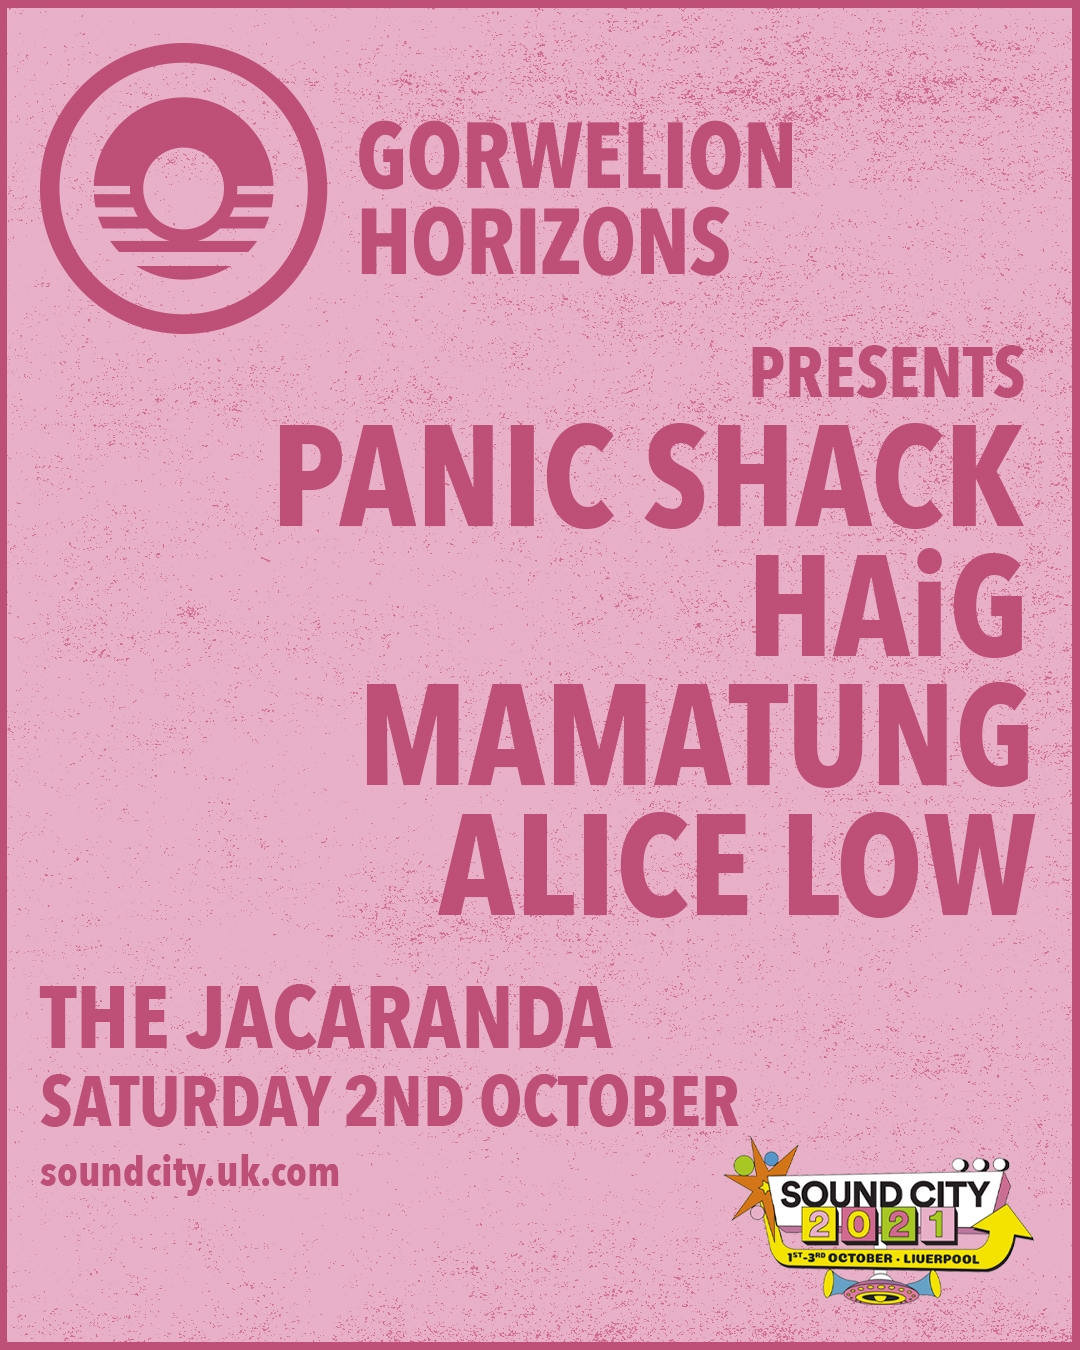 A wild welsh showcase on the cards for Jacaranda!